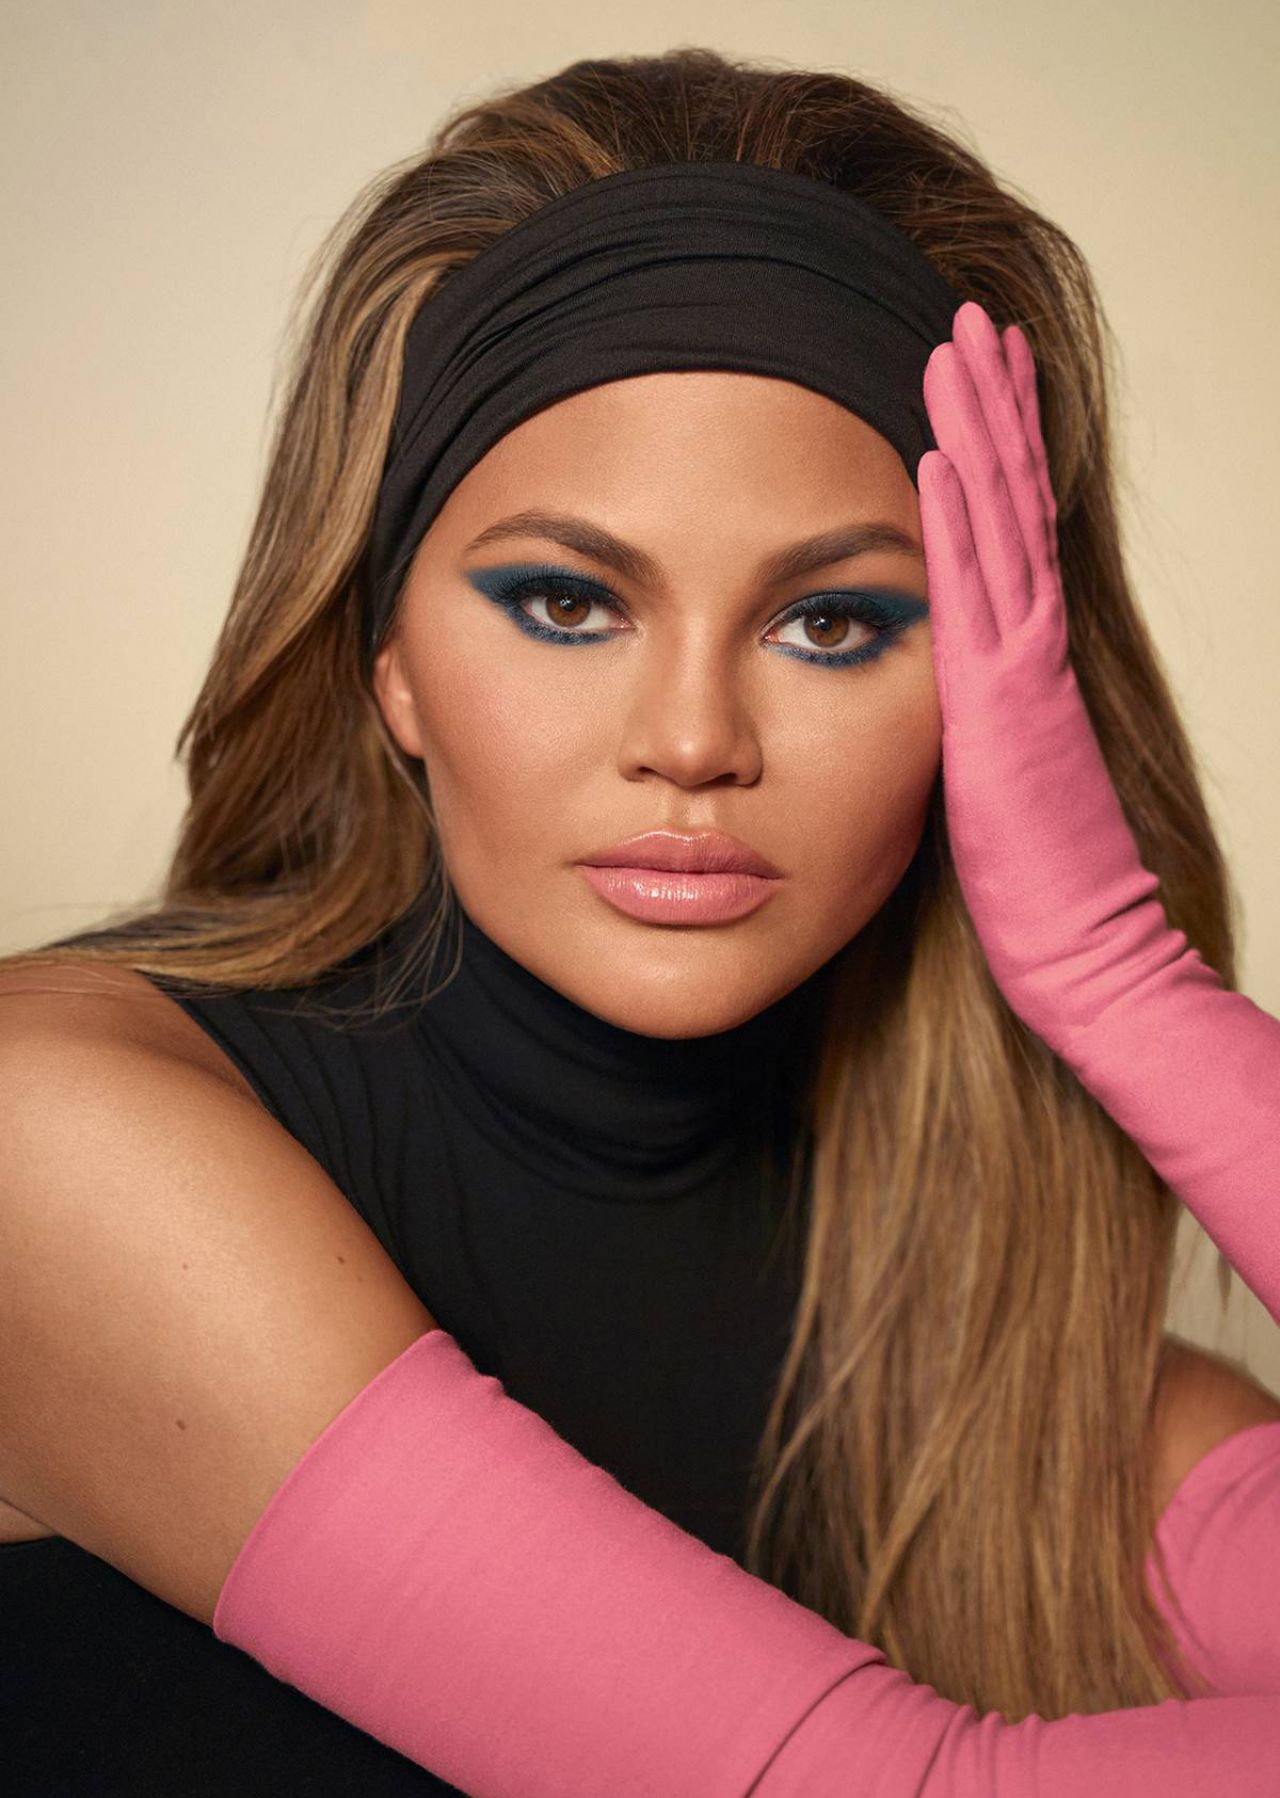 chrissy-teigen-covers-photoshoot-for-glamour-uk-may-2020